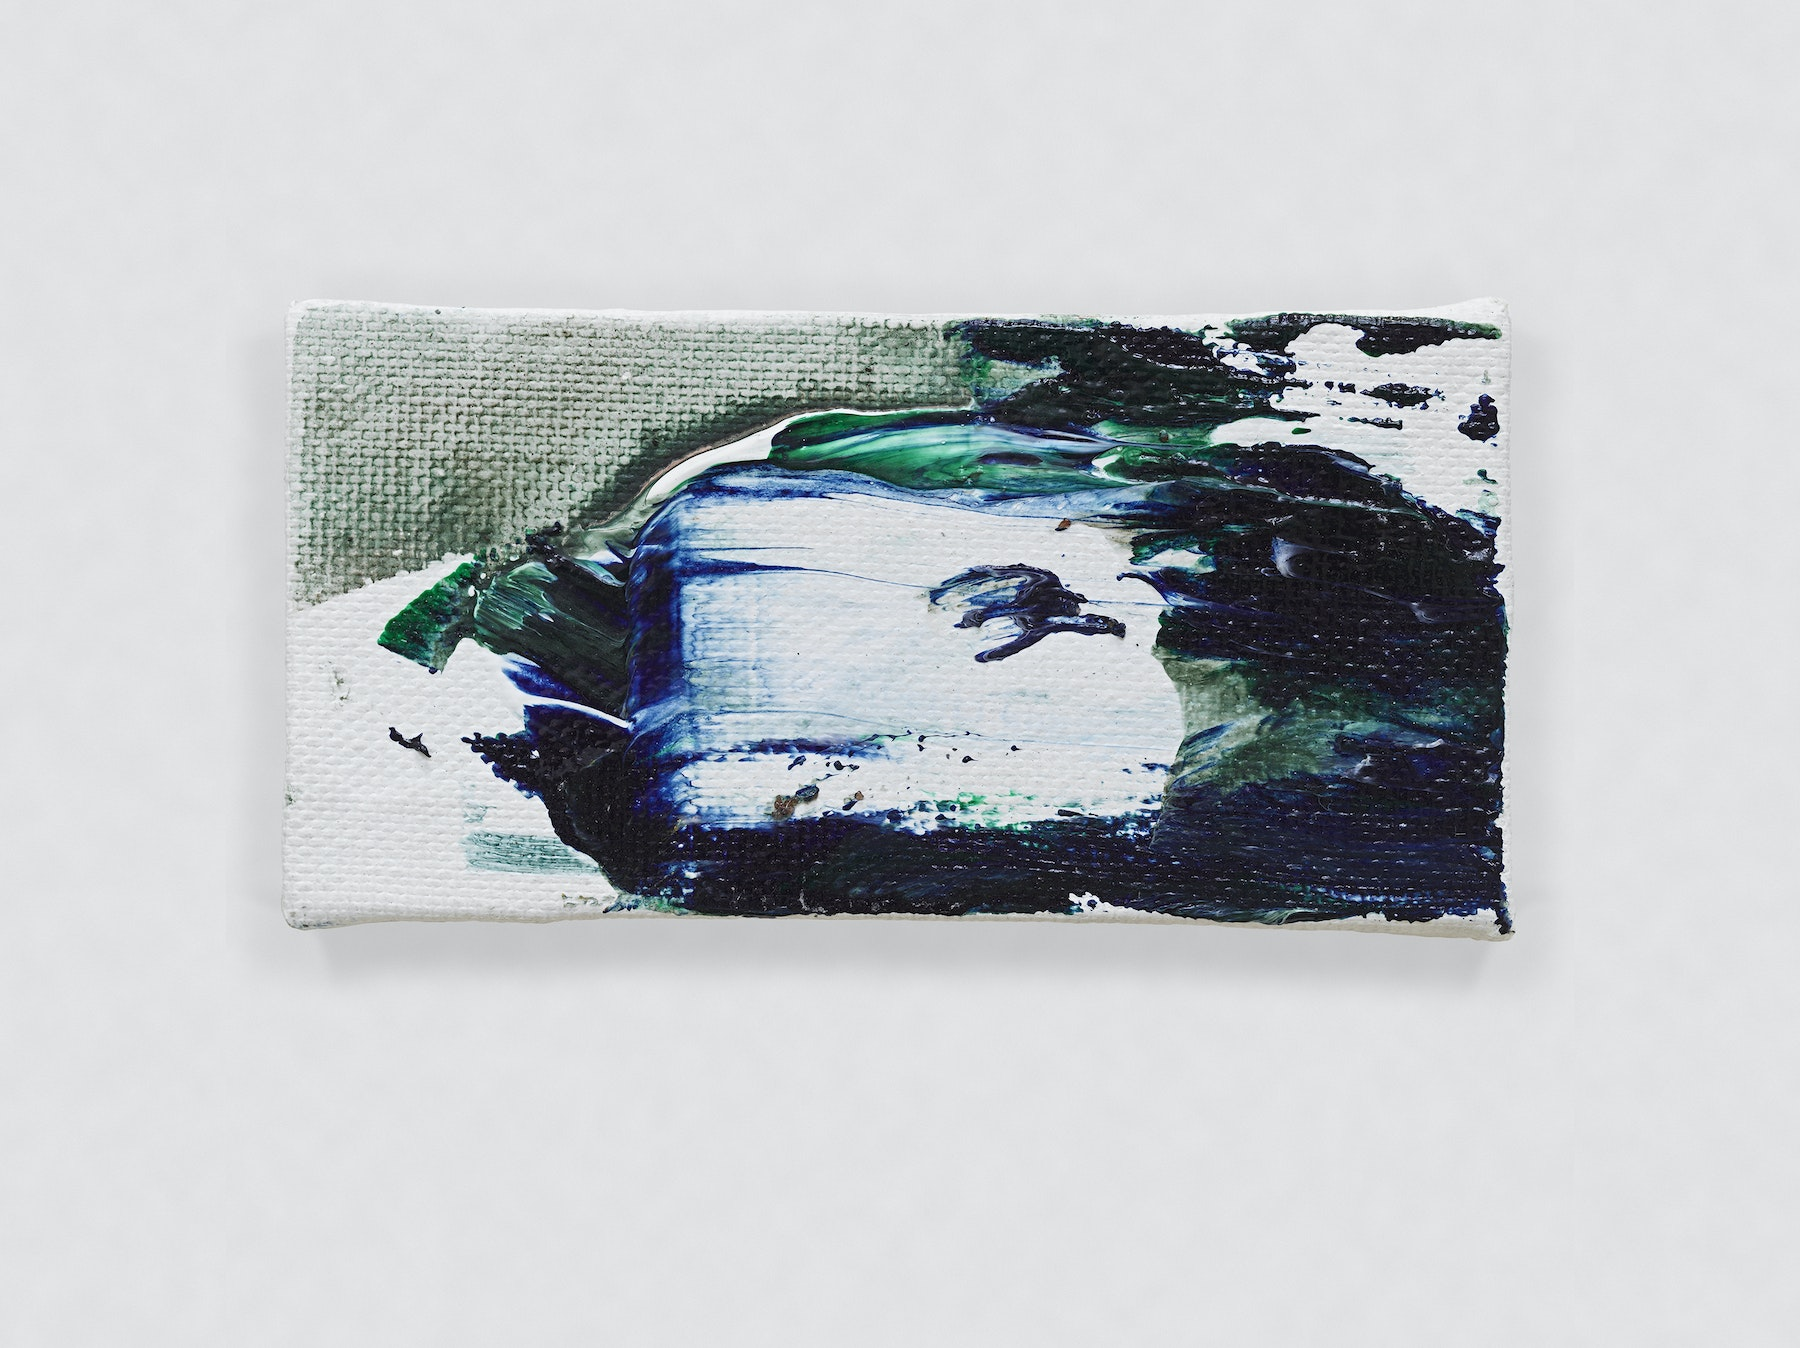 """Louise Fishman """"UNTITLED,"""" 2014 Oil on canvas 2.09 x 4.06"""" [HxW] (5.31 x 10.31 cm) Inventory #FIS146 Courtesy of the artist and Vielmetter Los Angeles Photo credit: Genevieve Hanson Signed and dated on verso"""